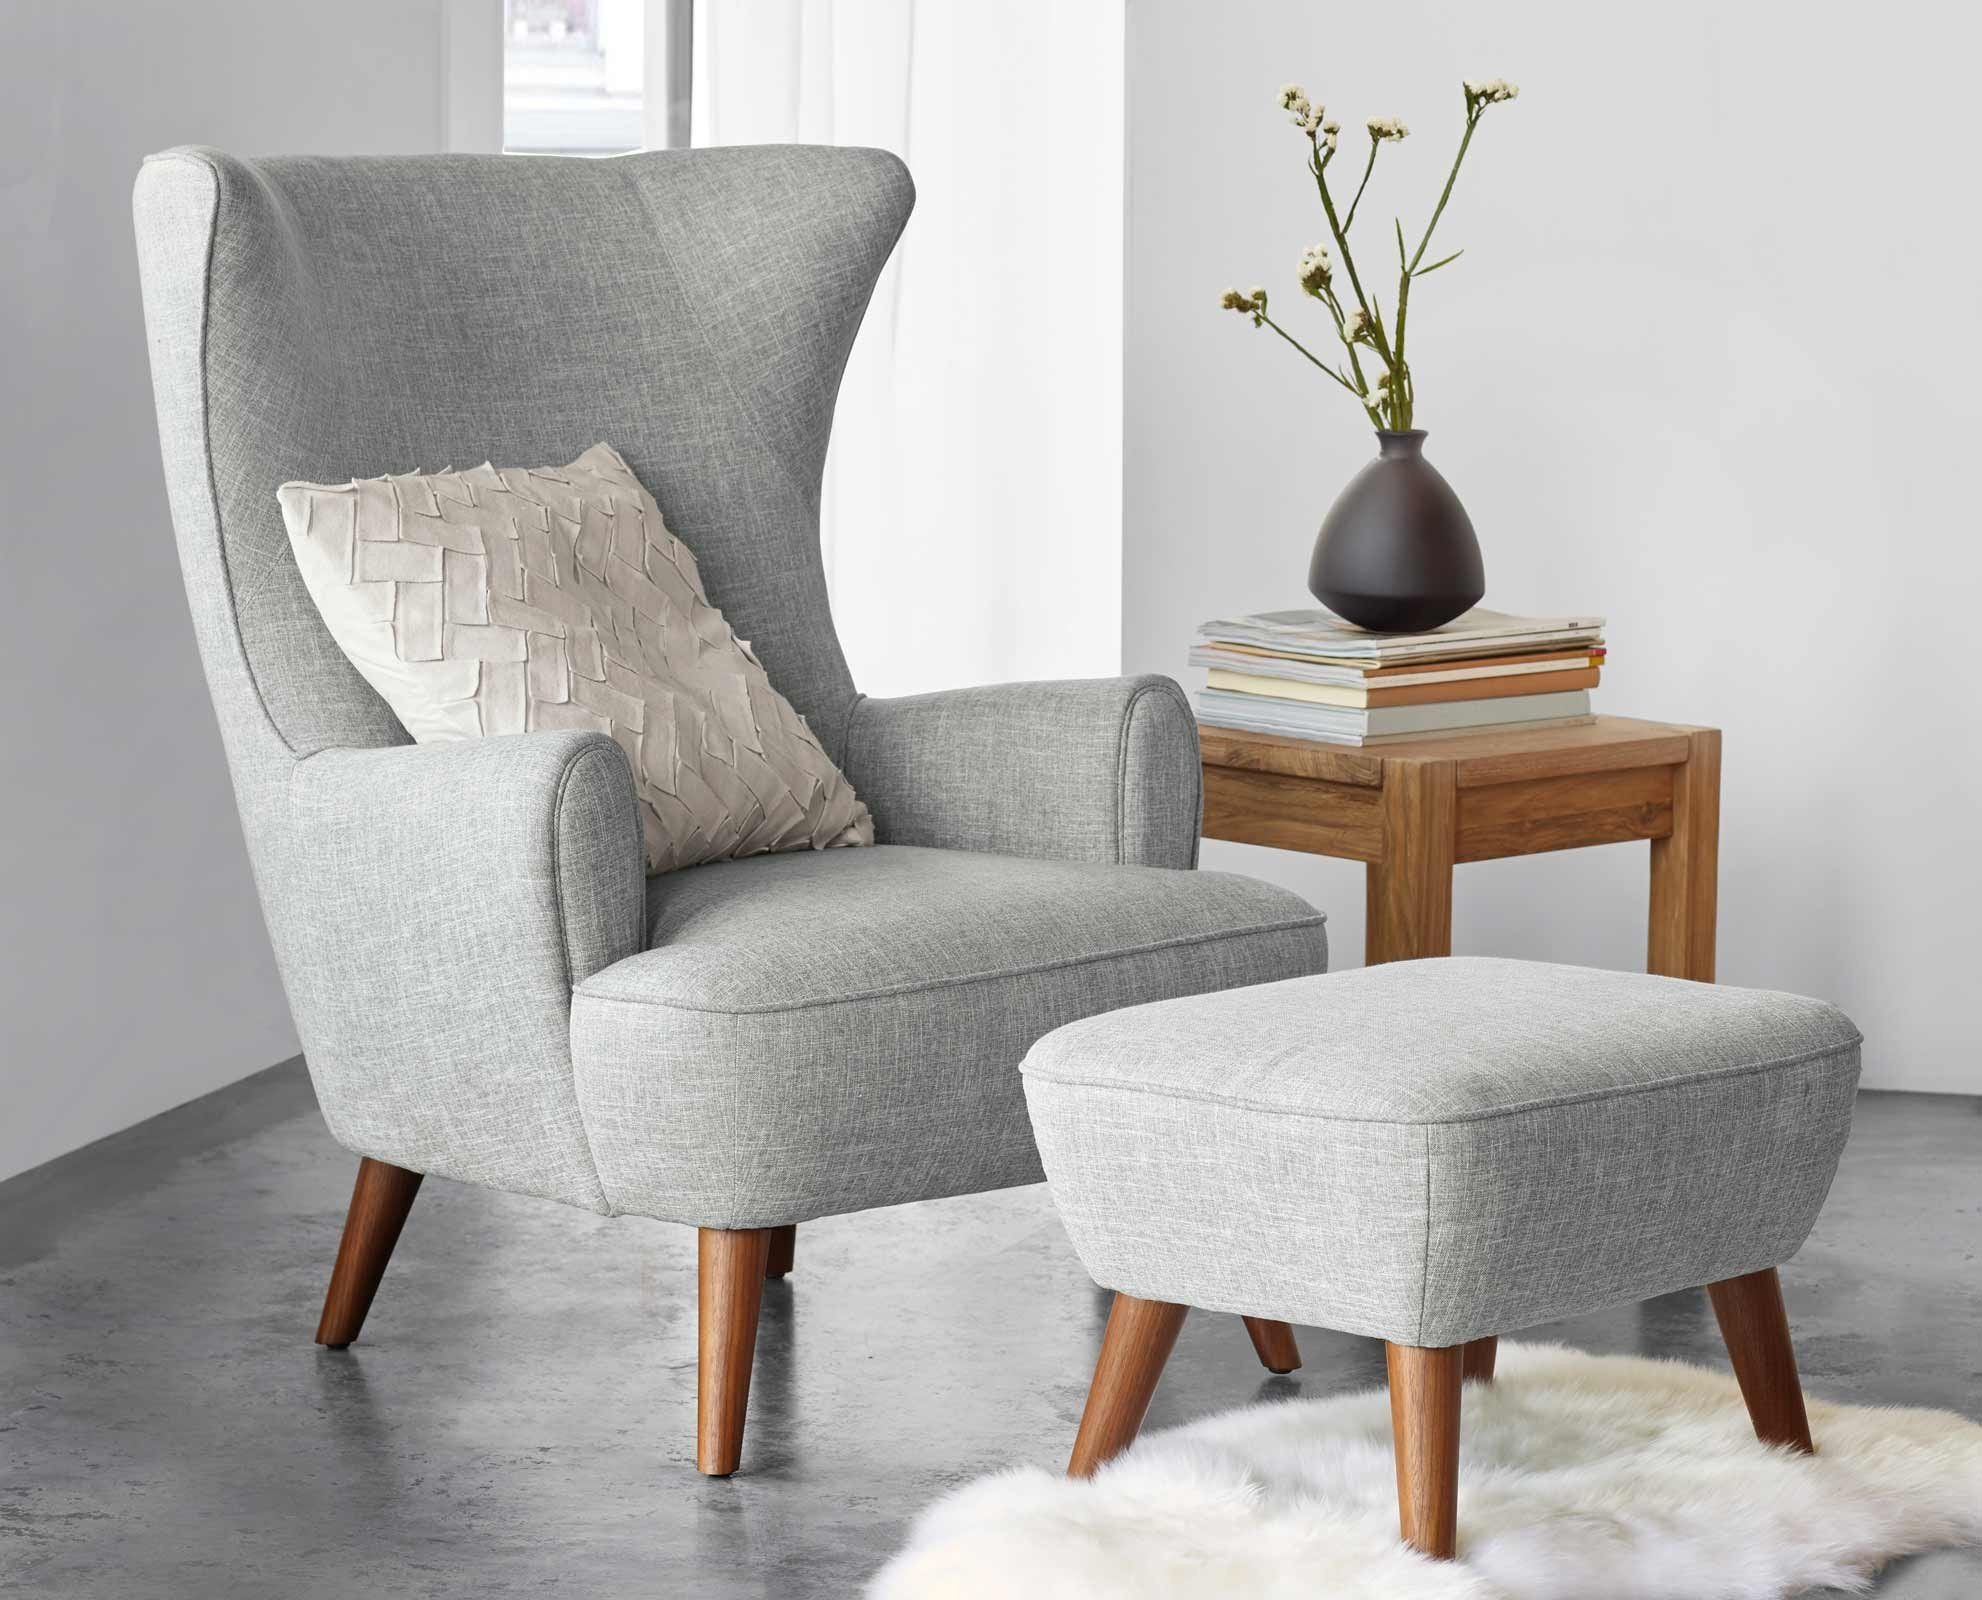 Katja High Back Chair From Dania Furniture. With An Overall Classic  Profile, The Lines Of The Katja High Back Chair Add Visual Interest To Your  Space.